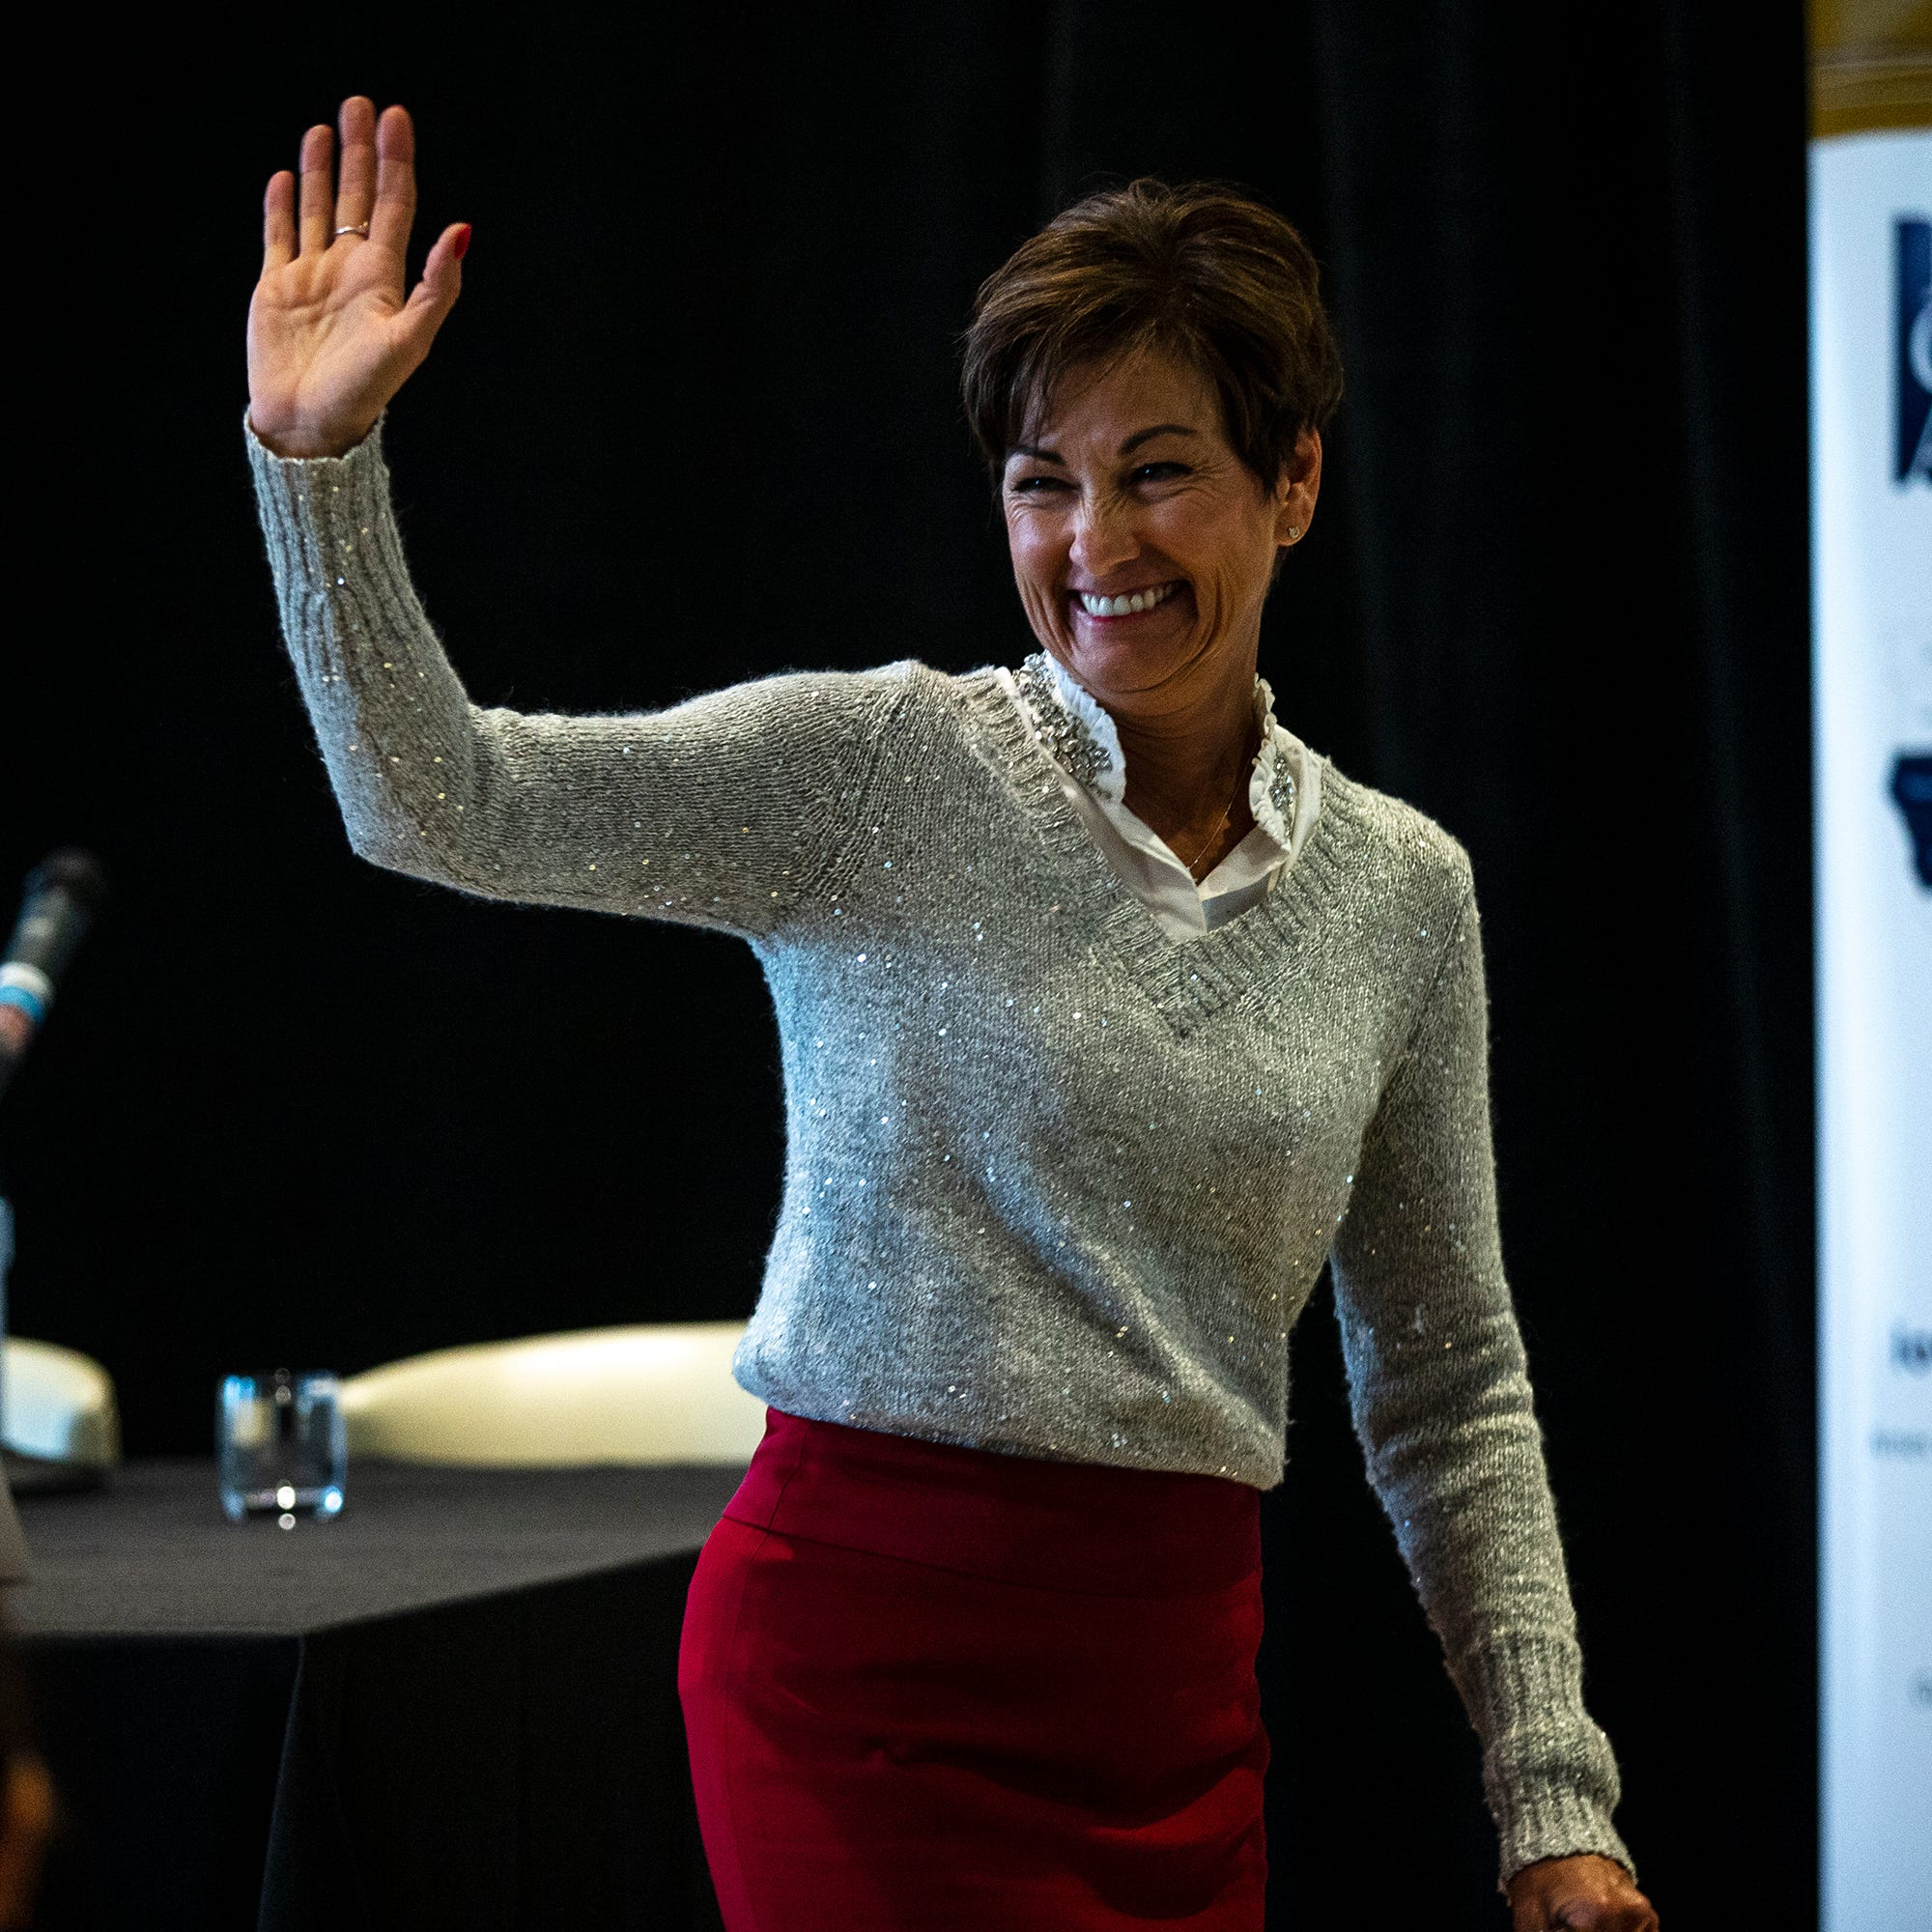 Newly elected governor Kim Reynolds follows a long line of trailblazing Iowa women